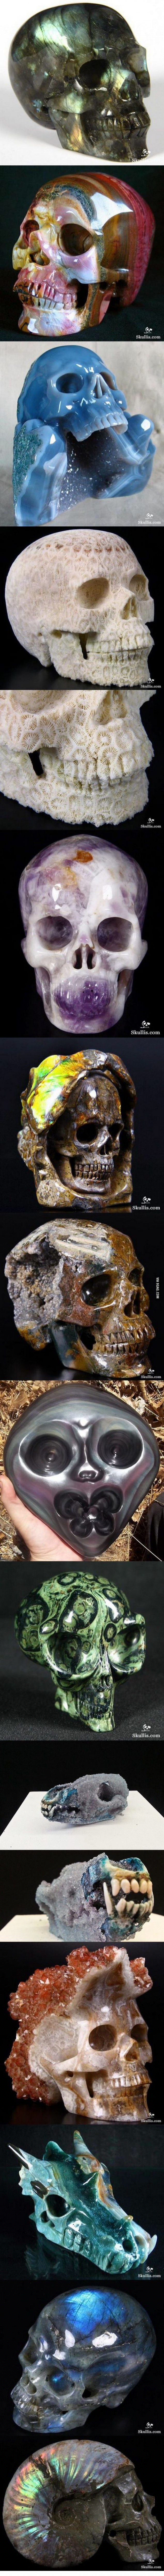 Skulls carved from minerals and coral.  Gorgeous...